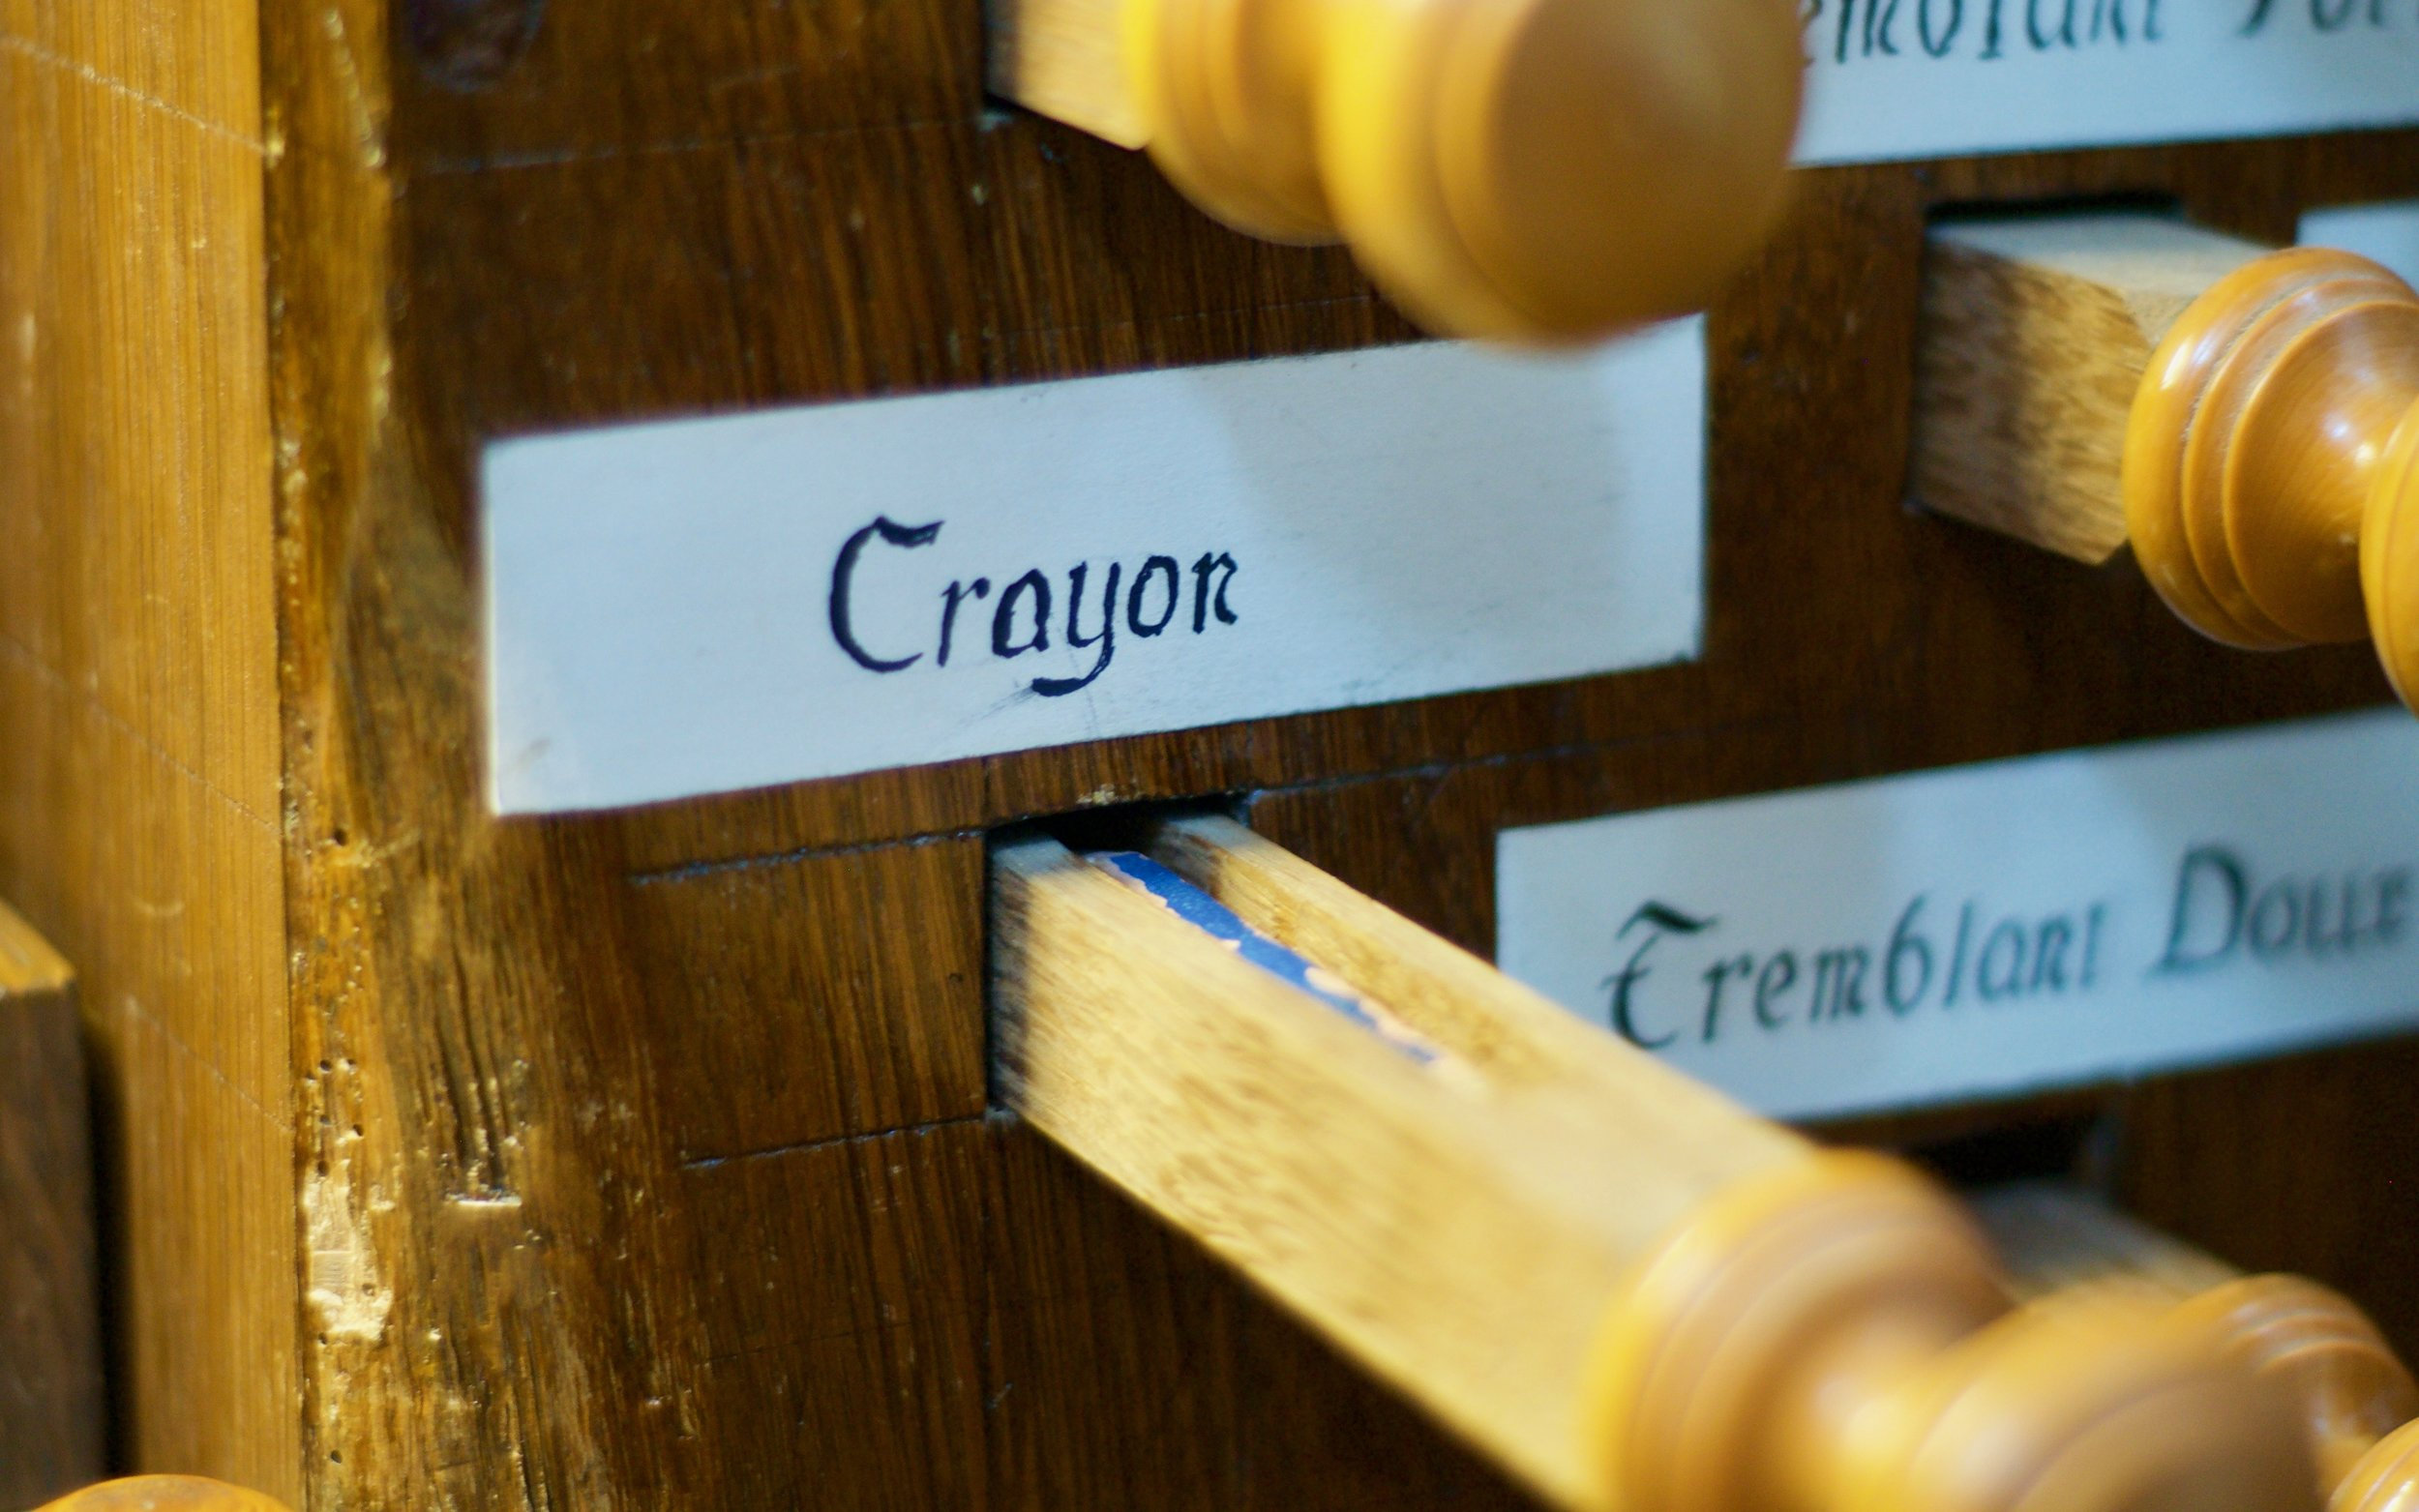 The infamous Crayon stop -- for a pencil!!